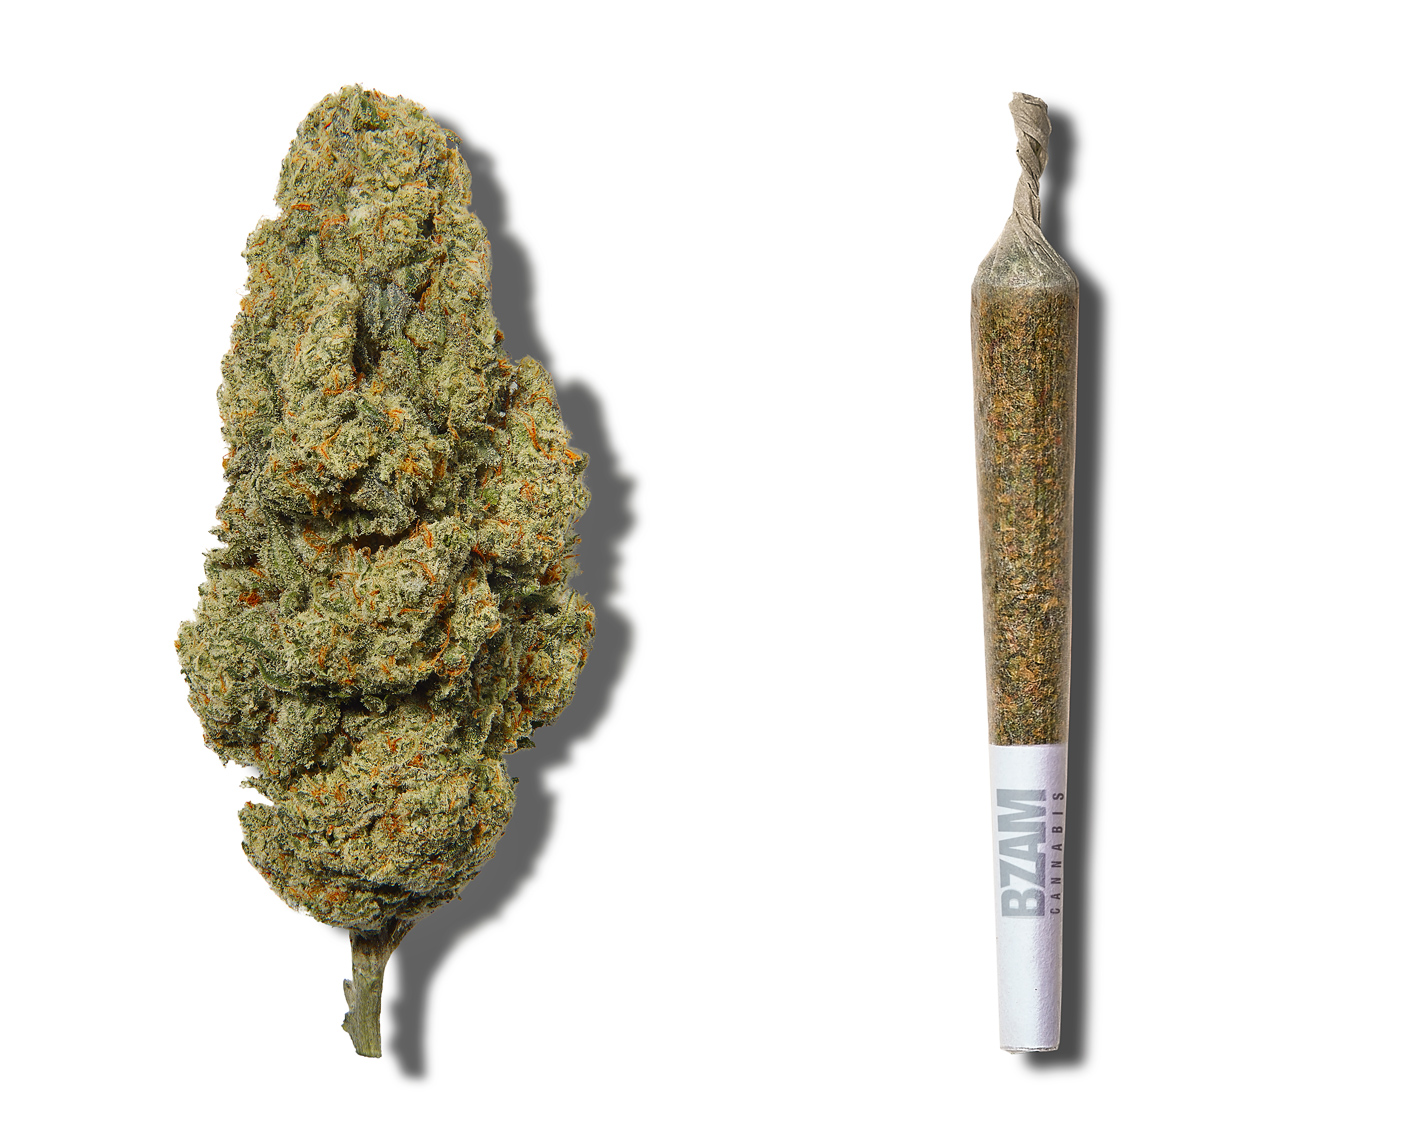 BZAM cannabis bud and cannabis joint